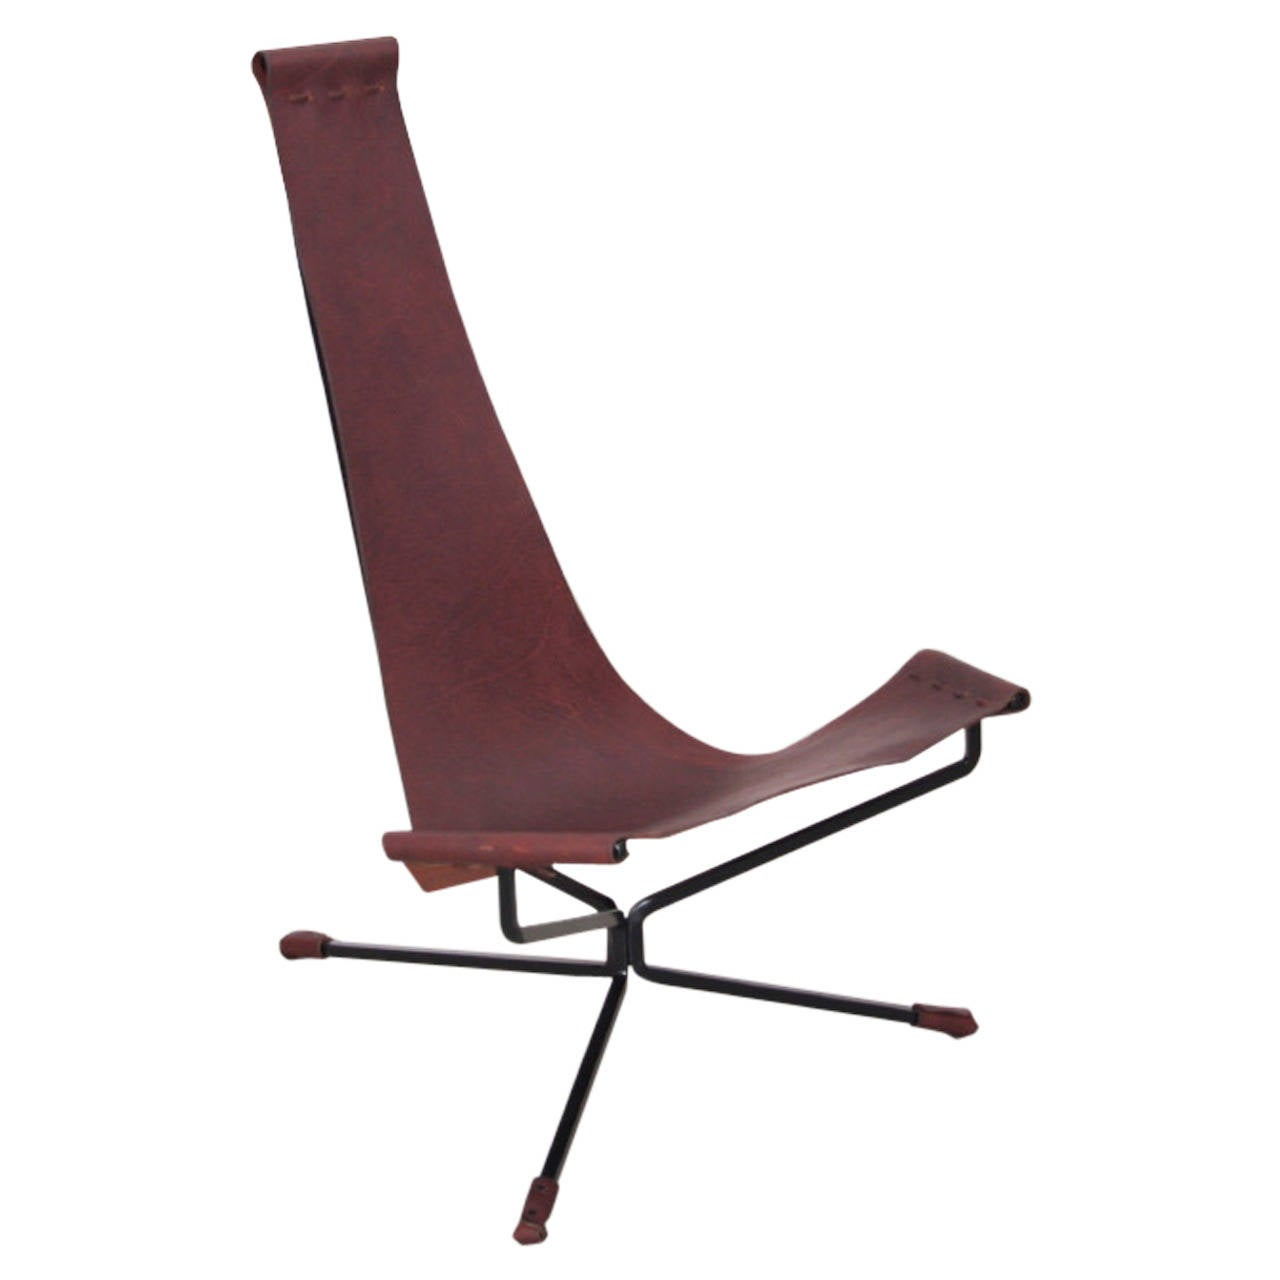 Wenger Chairs Dan Wenger Lotus Chair In Leather And Metal At 1stdibs